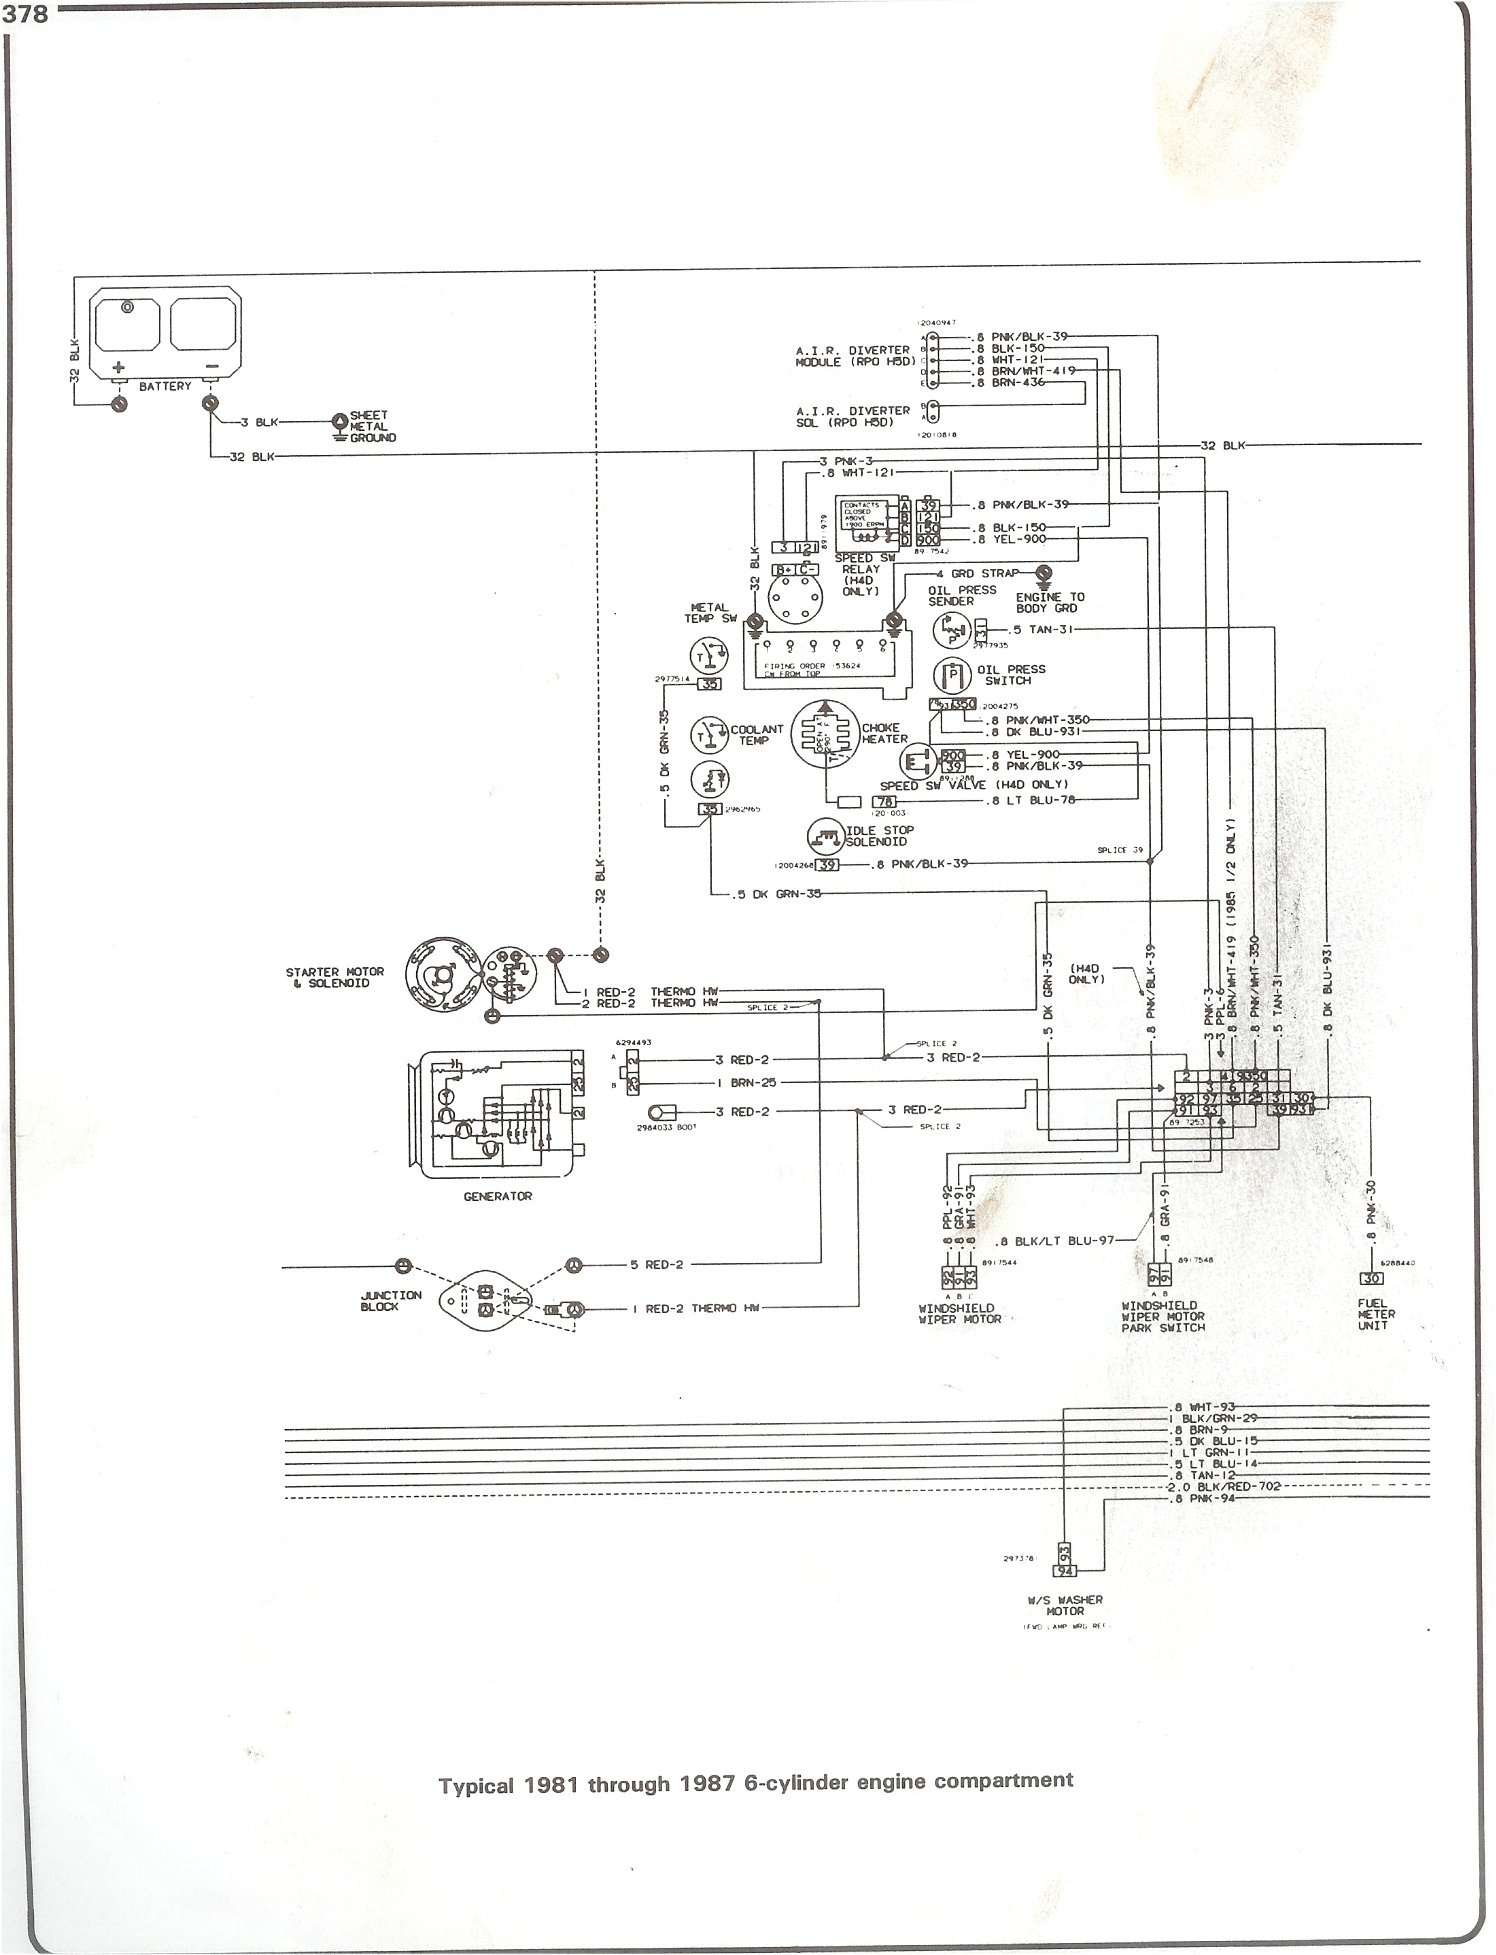 Complete 73 87 Wiring Diagrams Also 1977 Ford Truck On Best Diagram For 81 I6 Engine Compartment